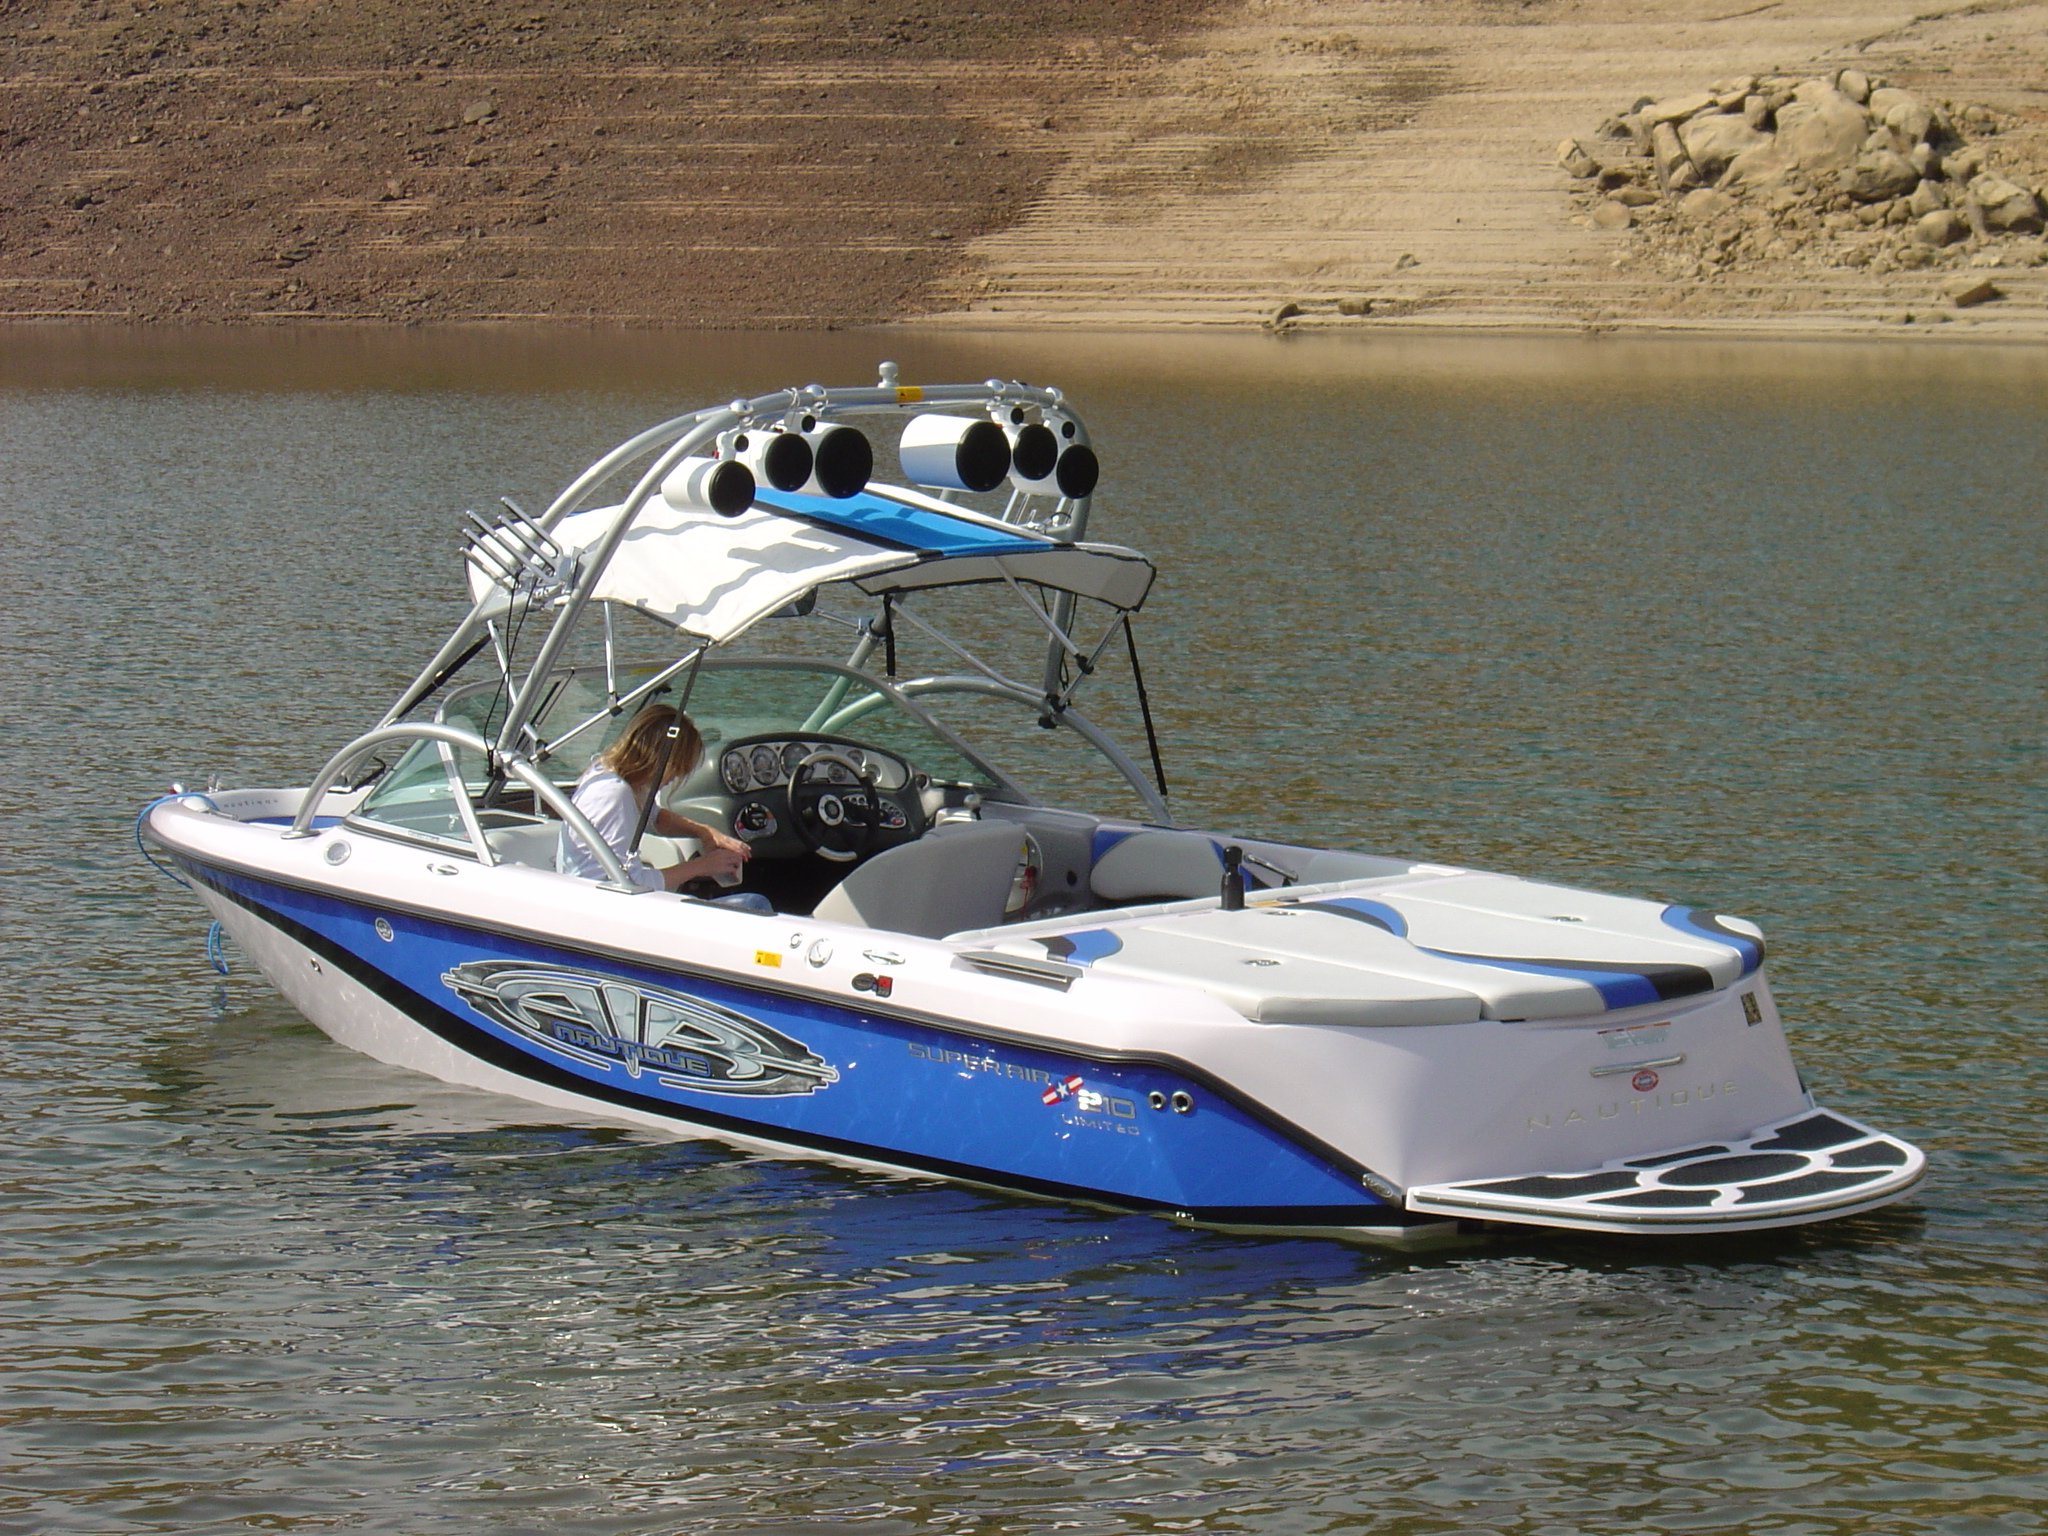 2004 Super Air Nautique 210 Le Planetnautique Forums